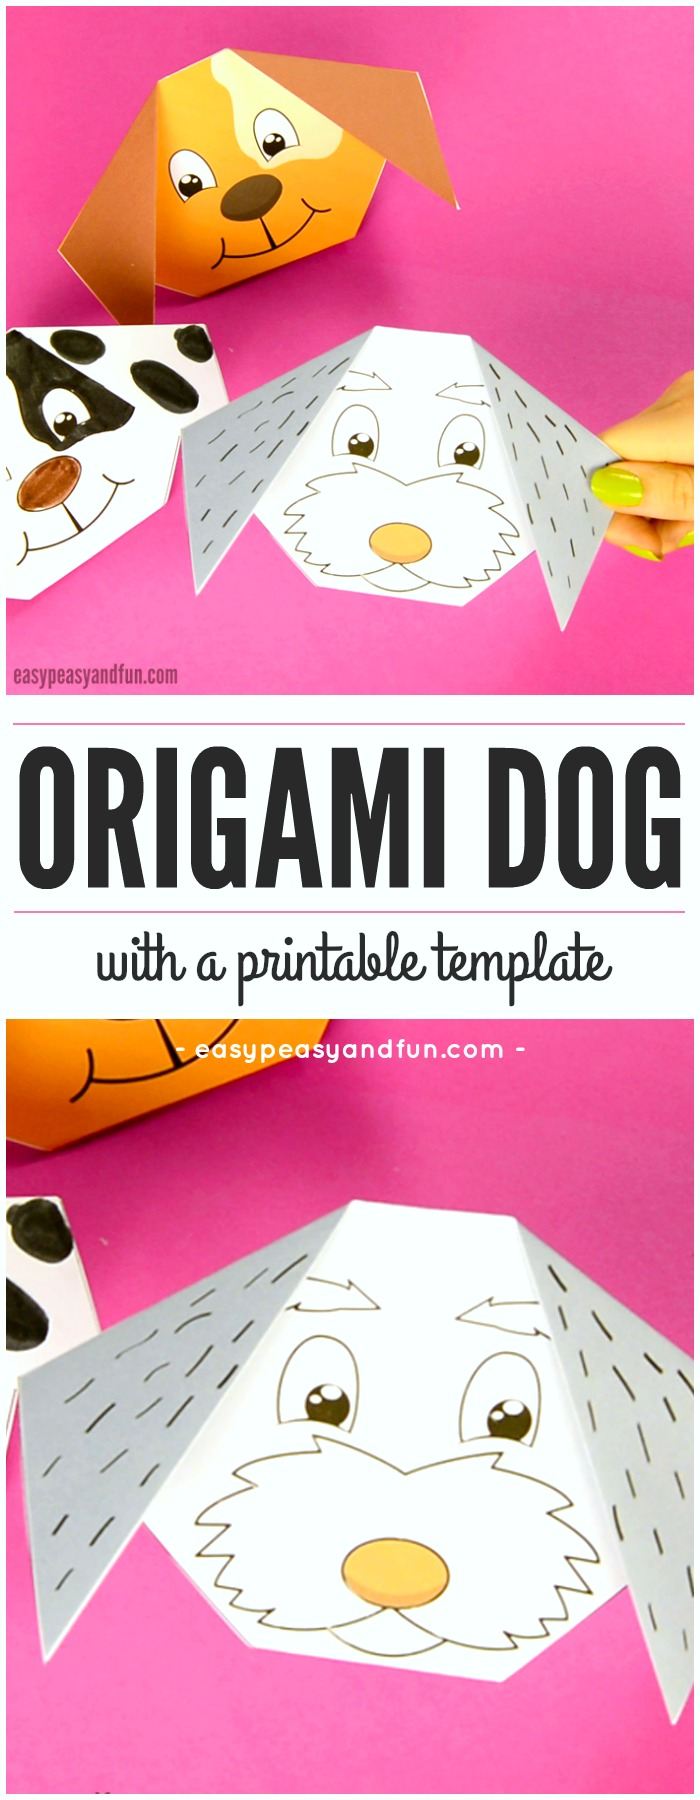 How to make an origami dog easy peasy and fun cute origami dog with printable template jeuxipadfo Image collections